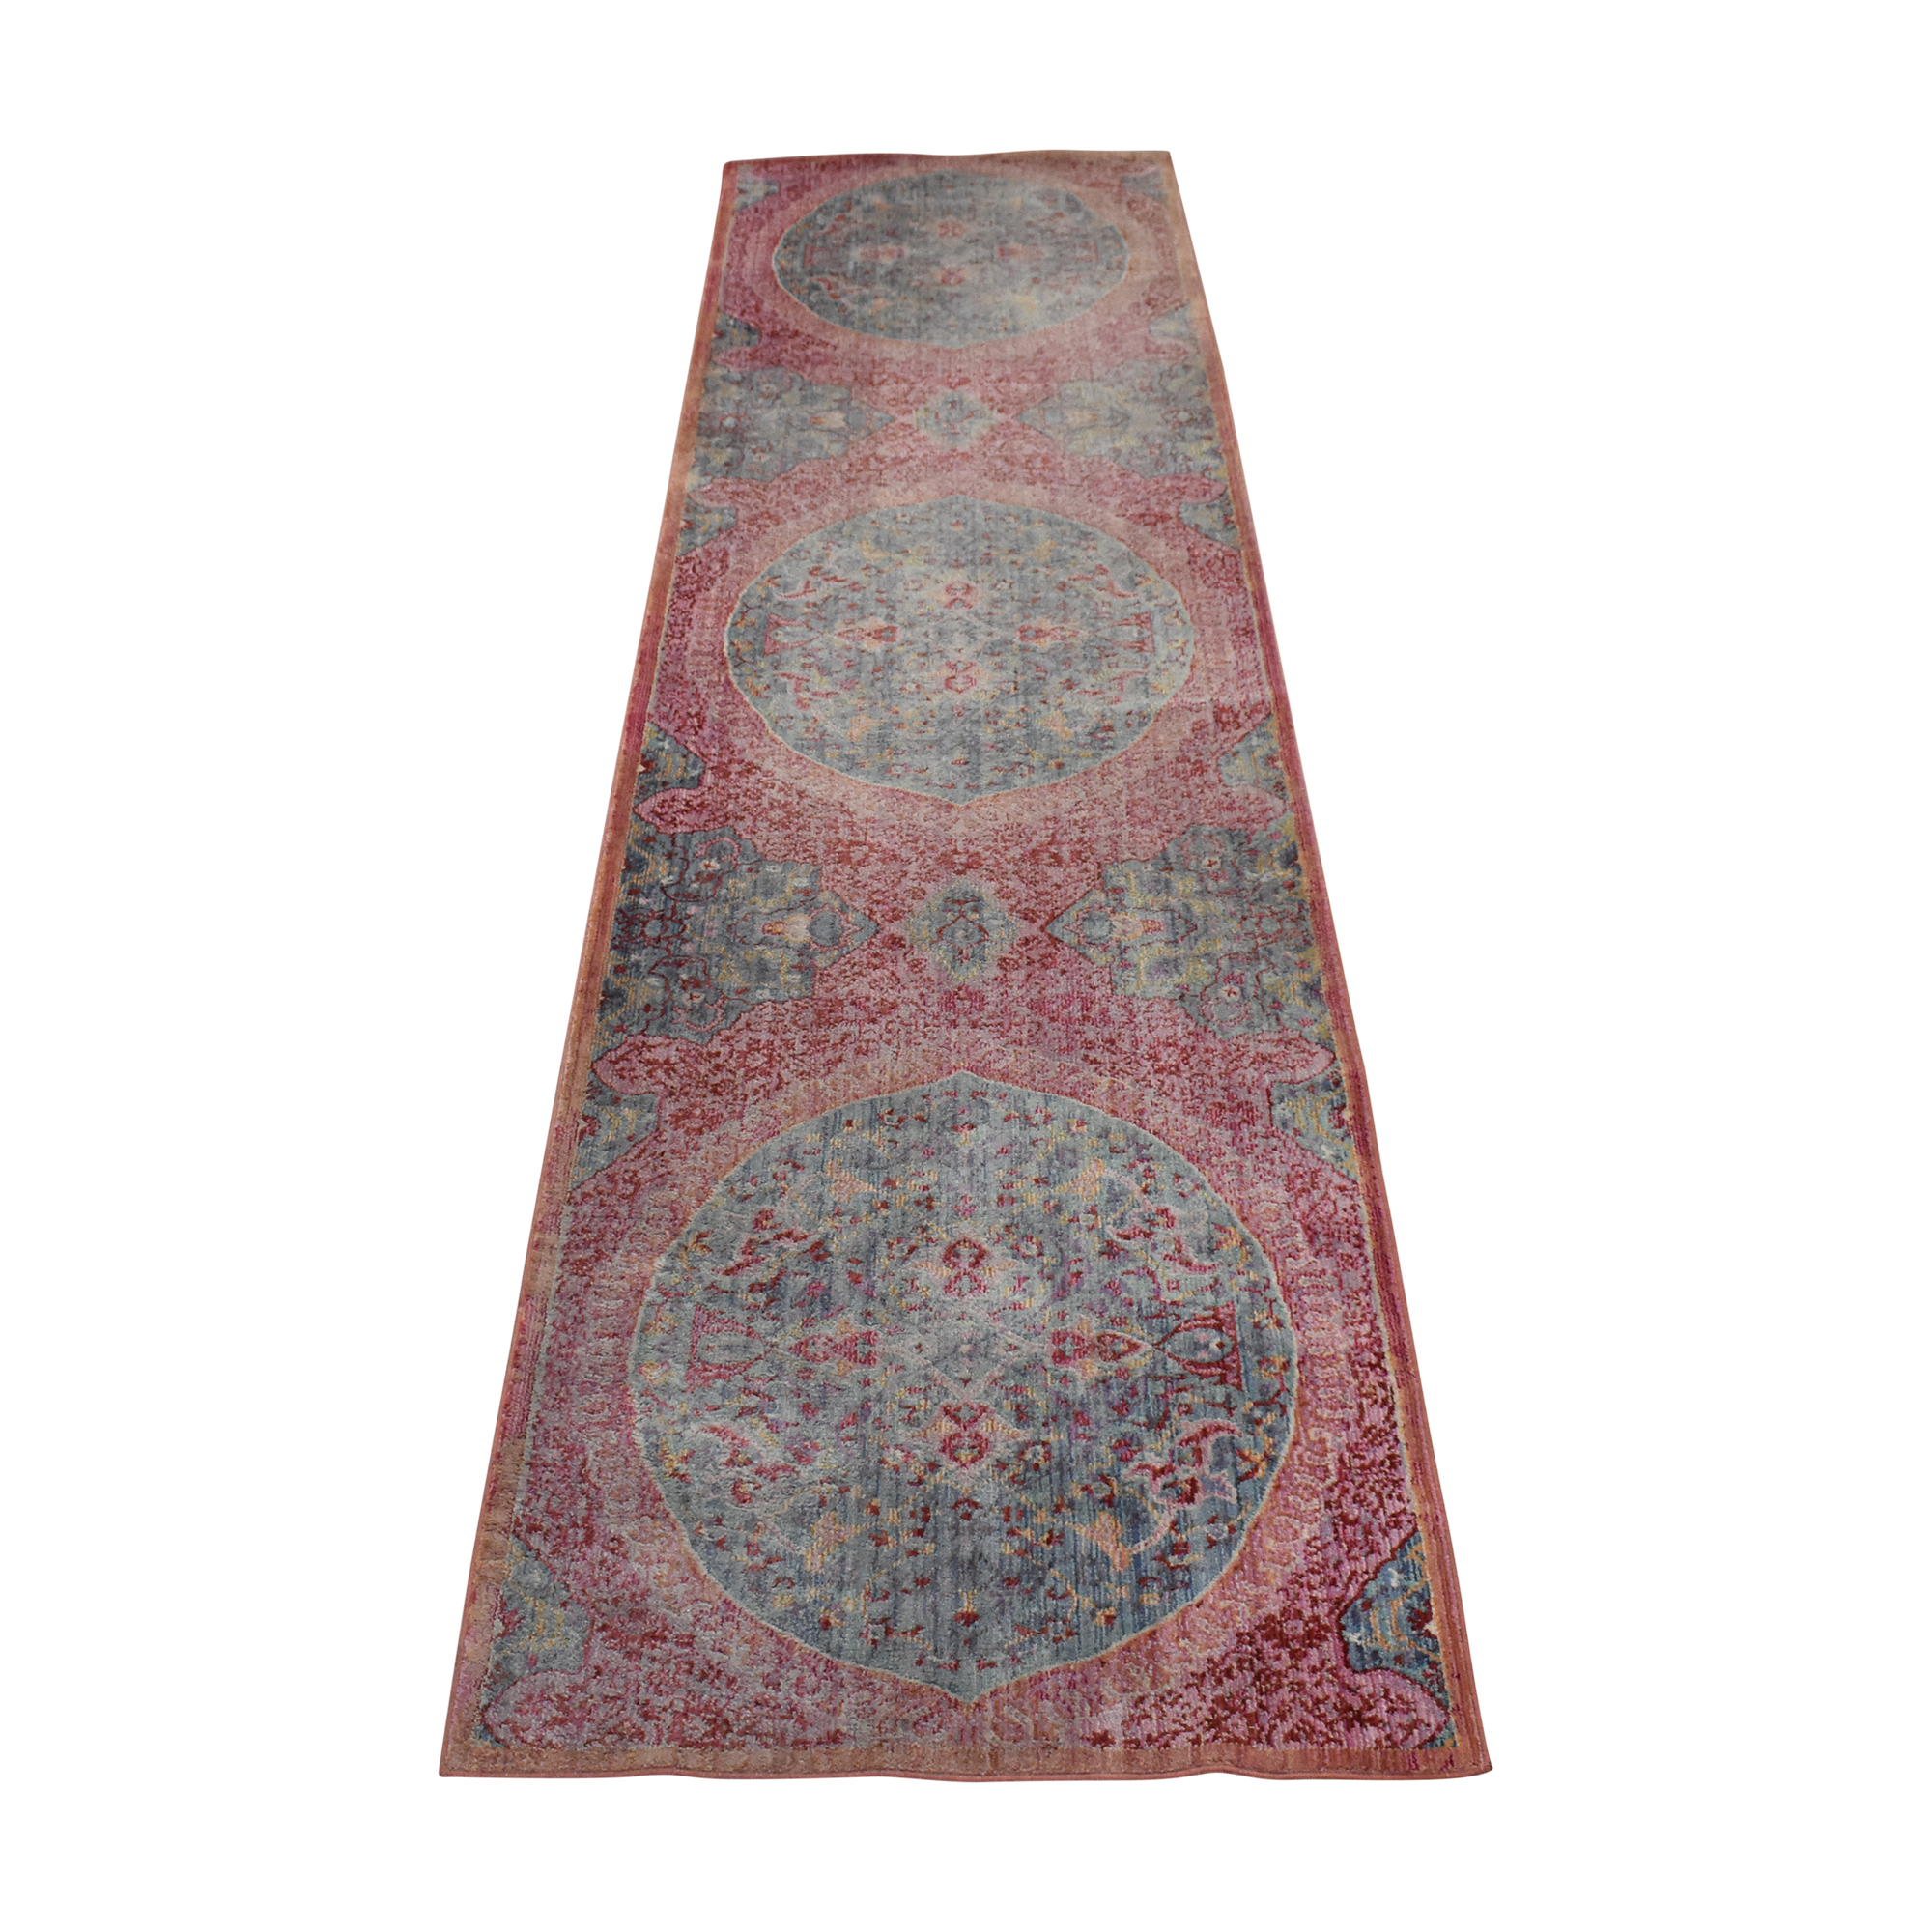 buy Safavieh Safavieh Sutton Collection Runner Rug online